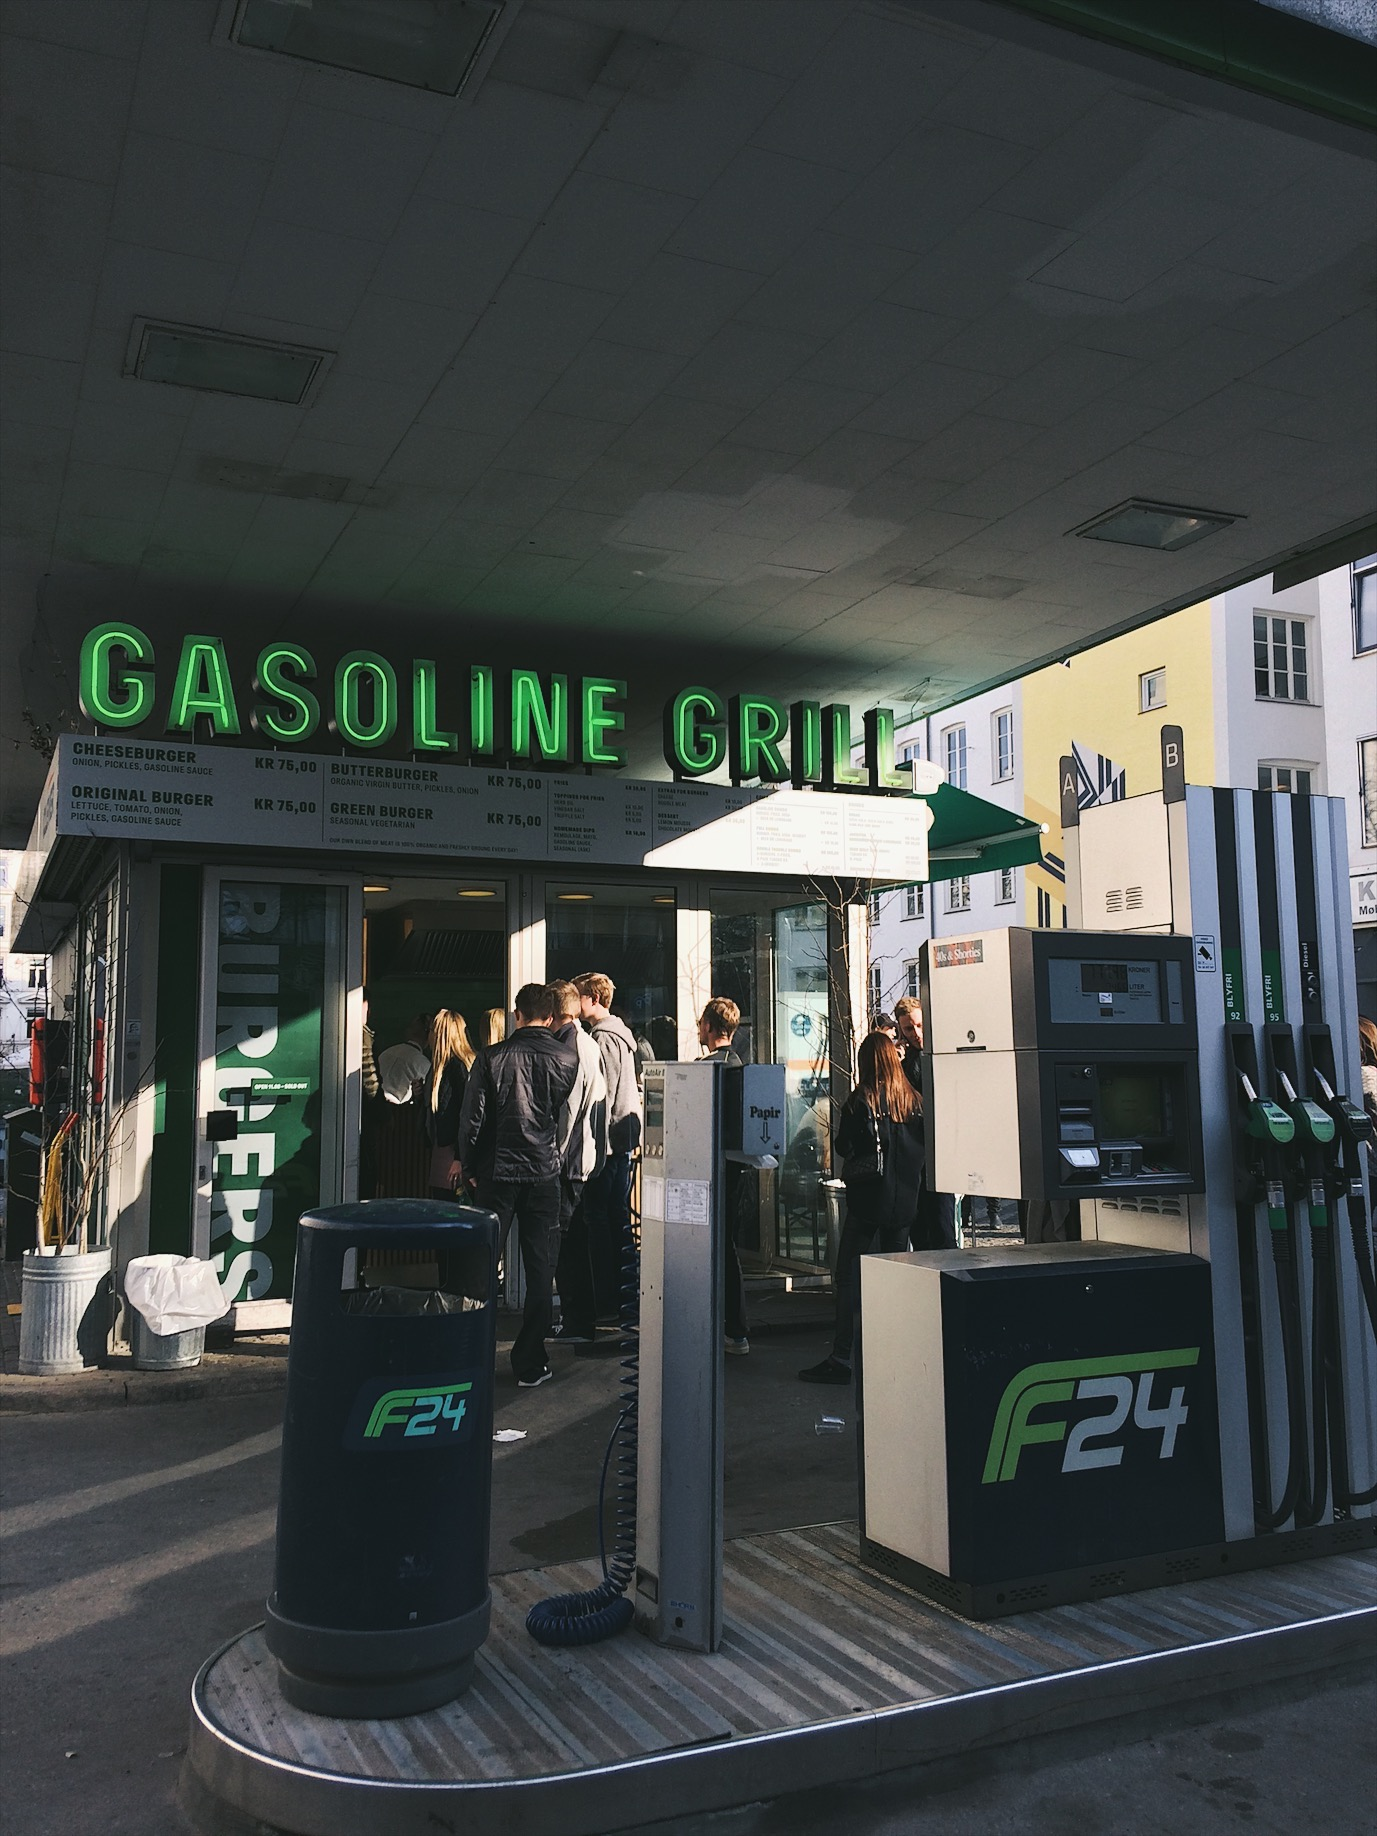 5. EAT |GASOLINE GRILL